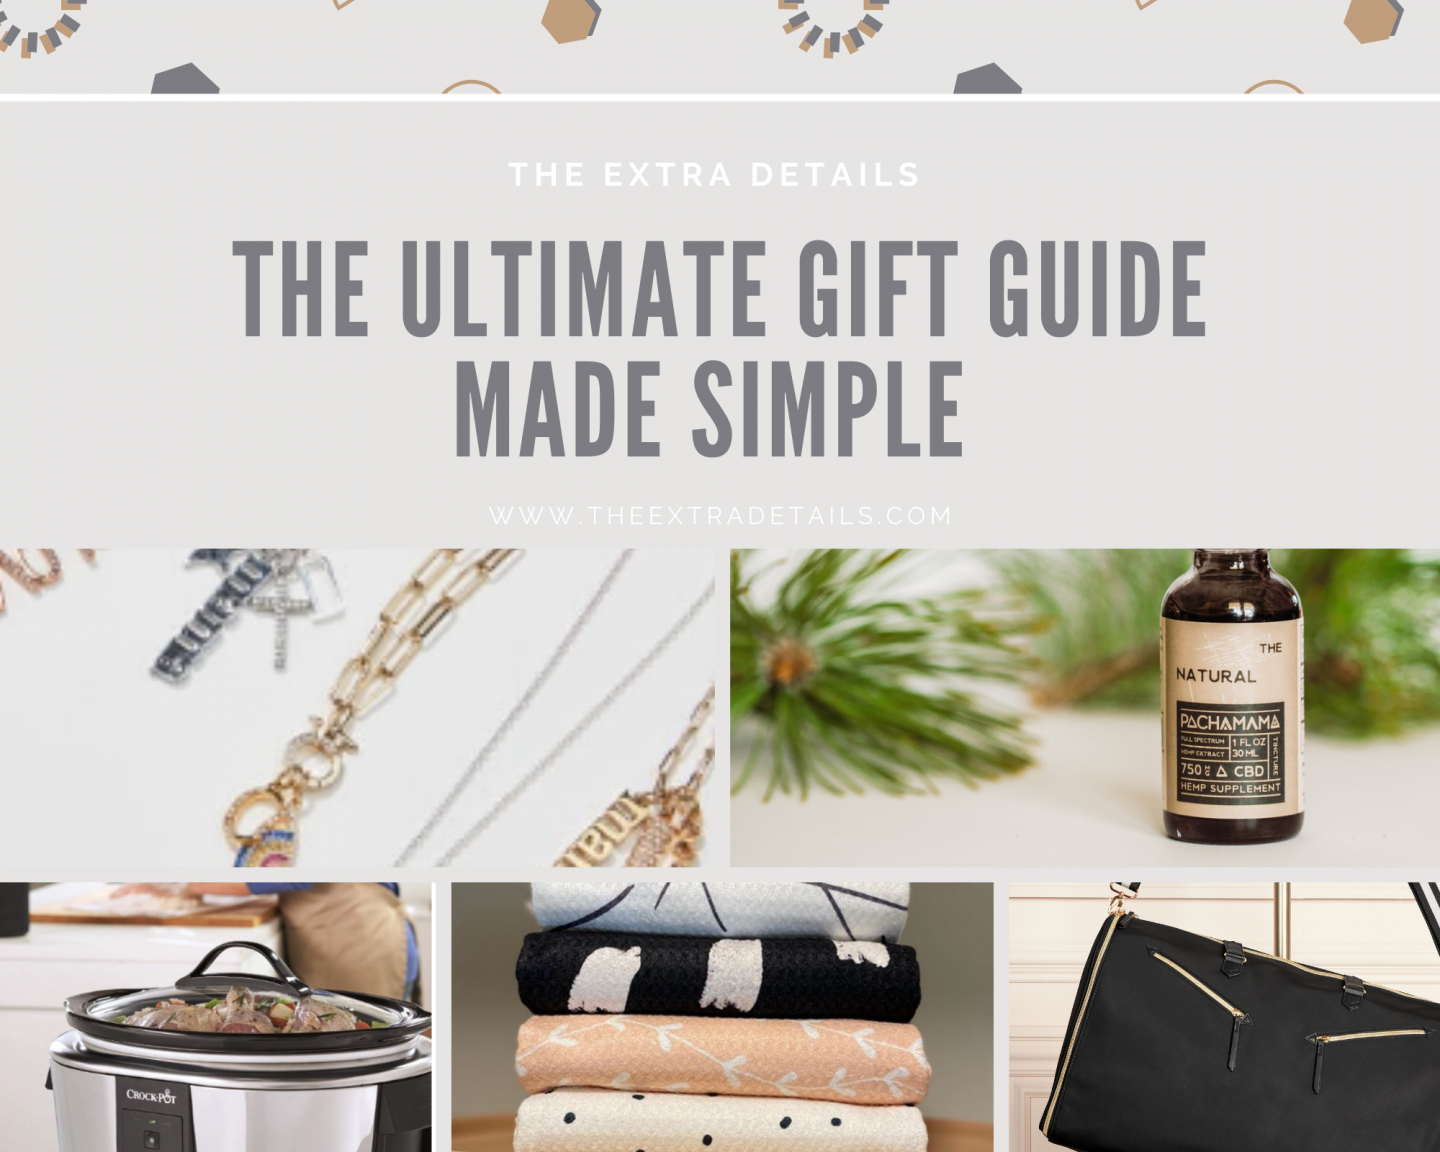 The Ultimate Gift Guide: Made Simple